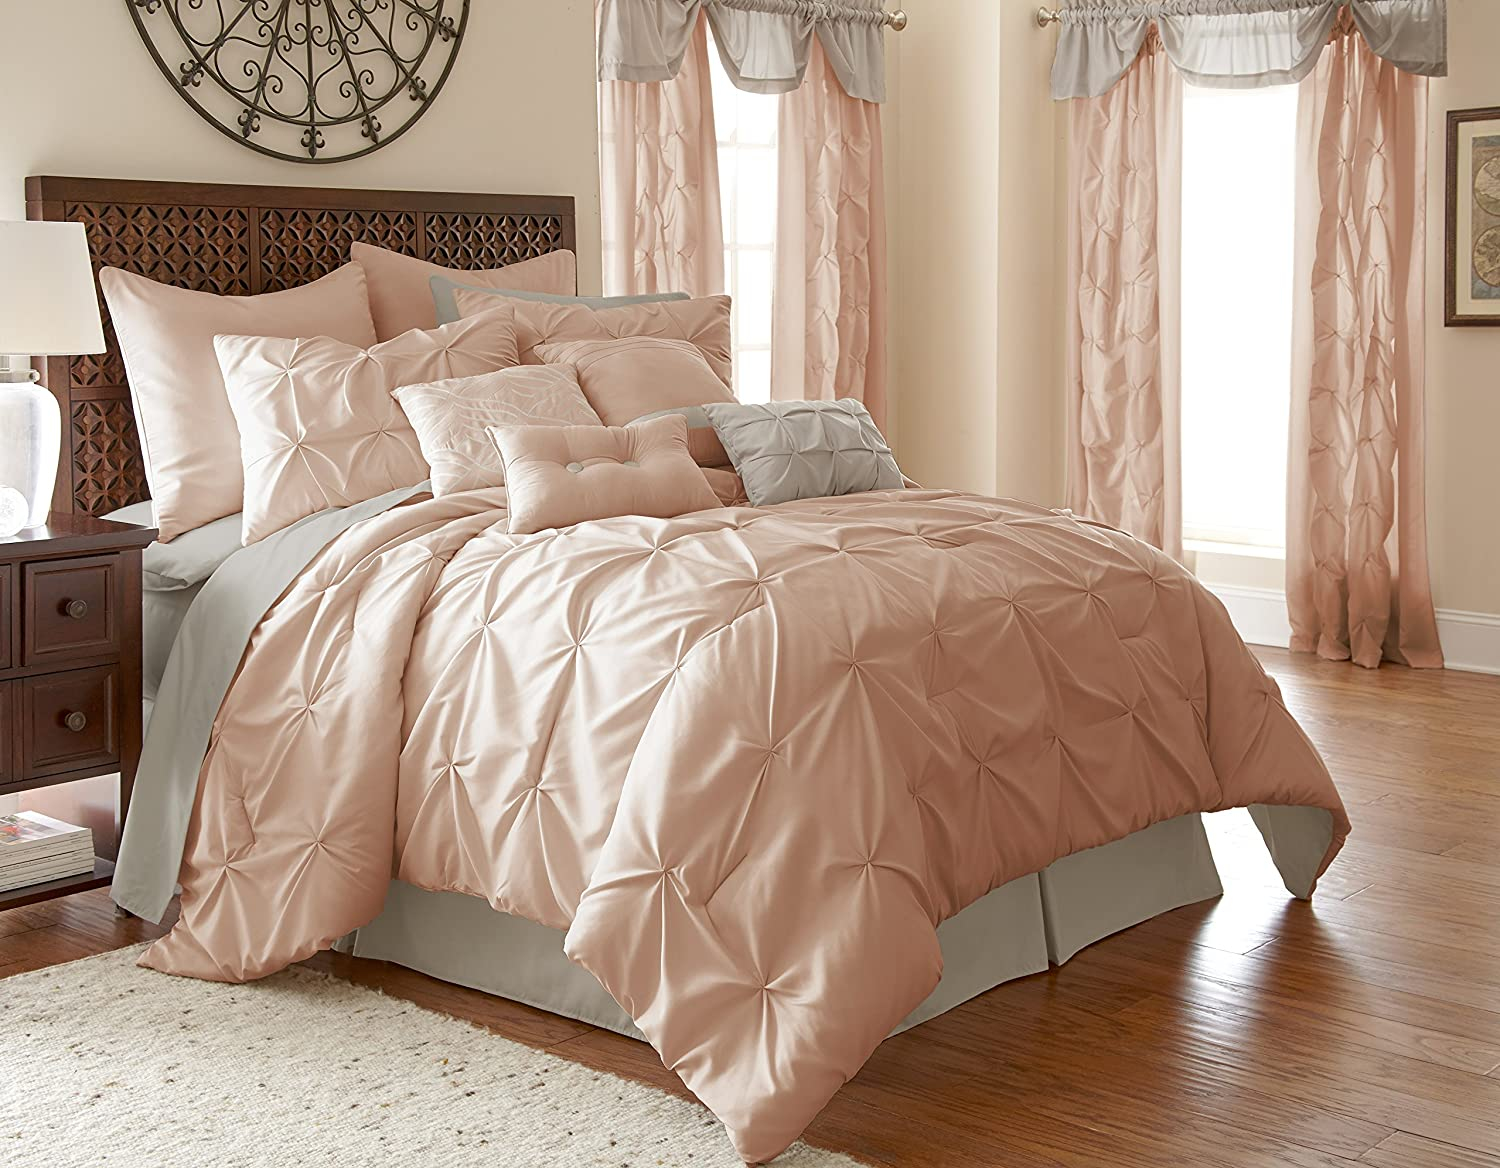 beddings conjunction bedding rustic plus french also ruffle ivory elegant as cover white burlap full quilt quilts ikea covers colored of blush comforter set off duvet together bedspread cream amish ruffled in sets pink with size well nursery